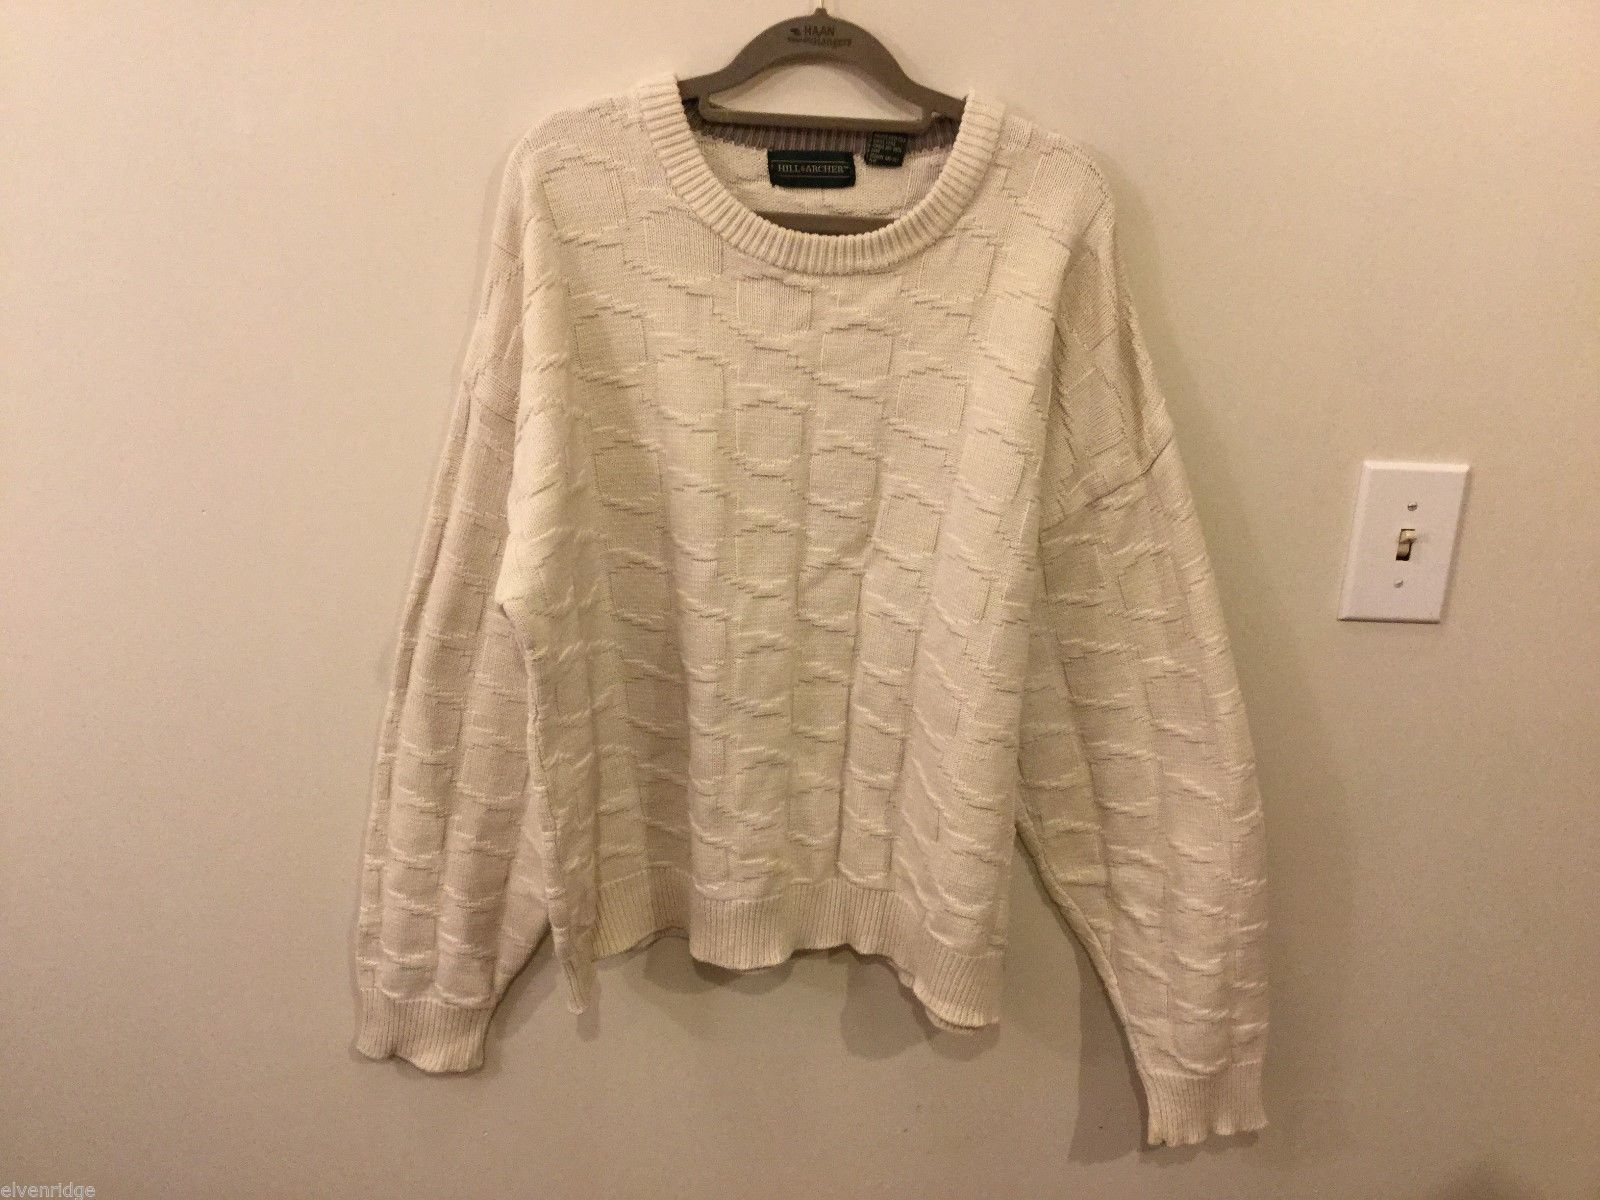 Unisex Hill & Archer White Crewneck Sweater, Size XL